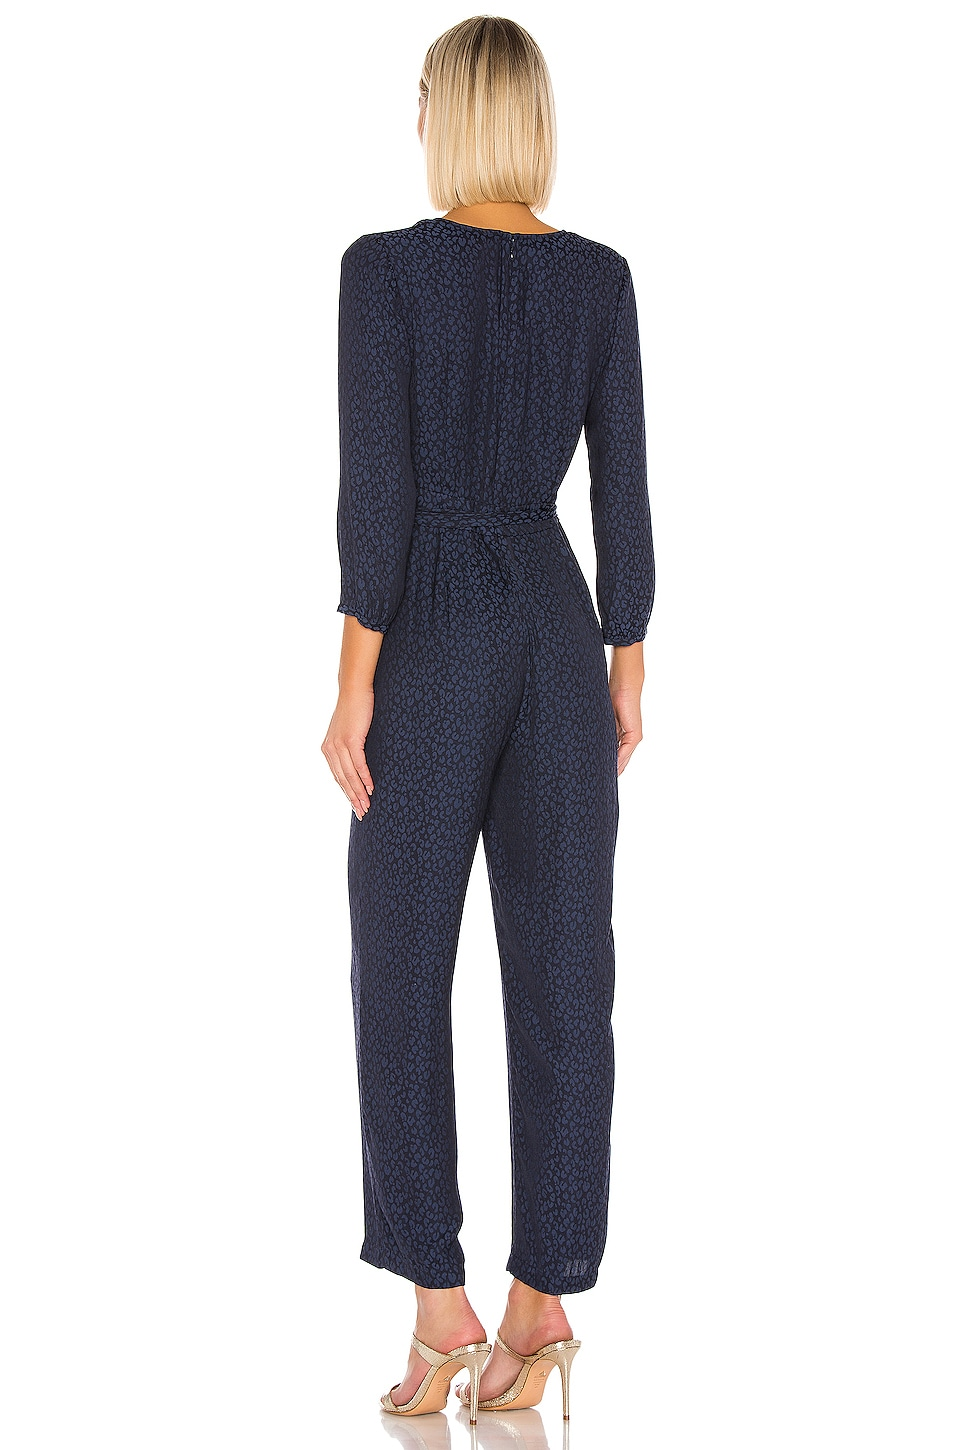 Front Tie Waist Jumpsuit, view 3, click to view large image.